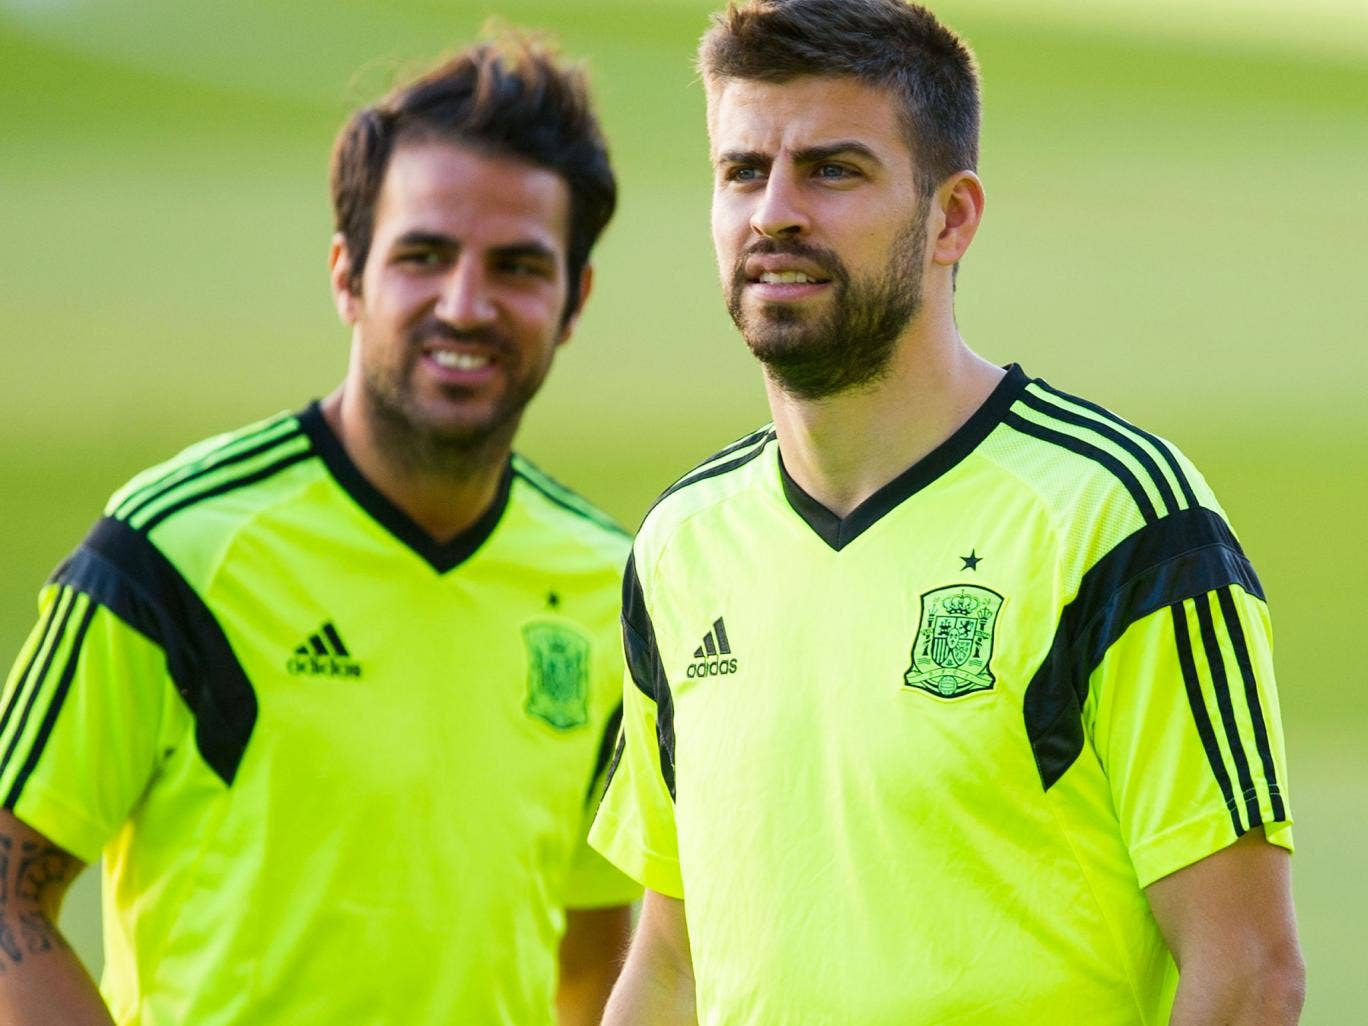 Cesc Fabregas (left) and Gerard Pique during training as Spain prepare for the World Cup